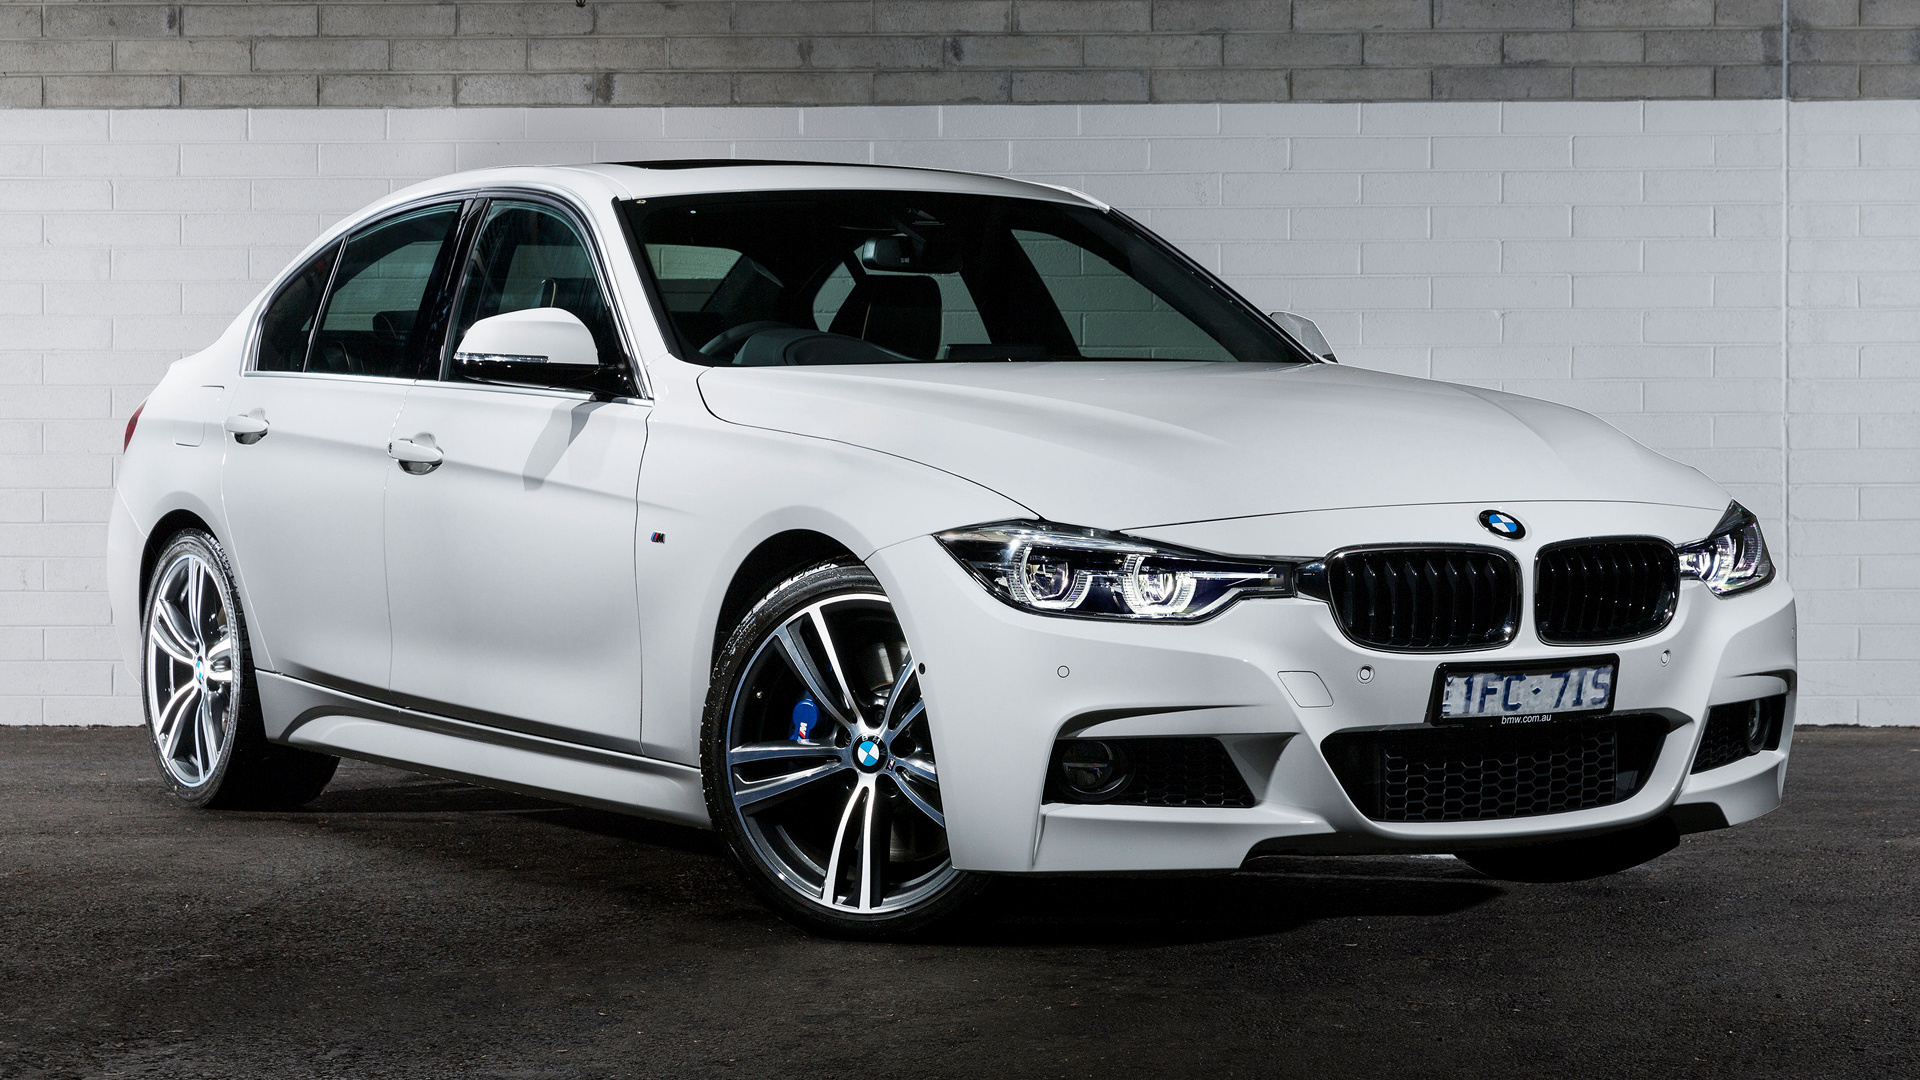 bmw 3 series m sport 100 year edition (2016) au wallpapers and hd